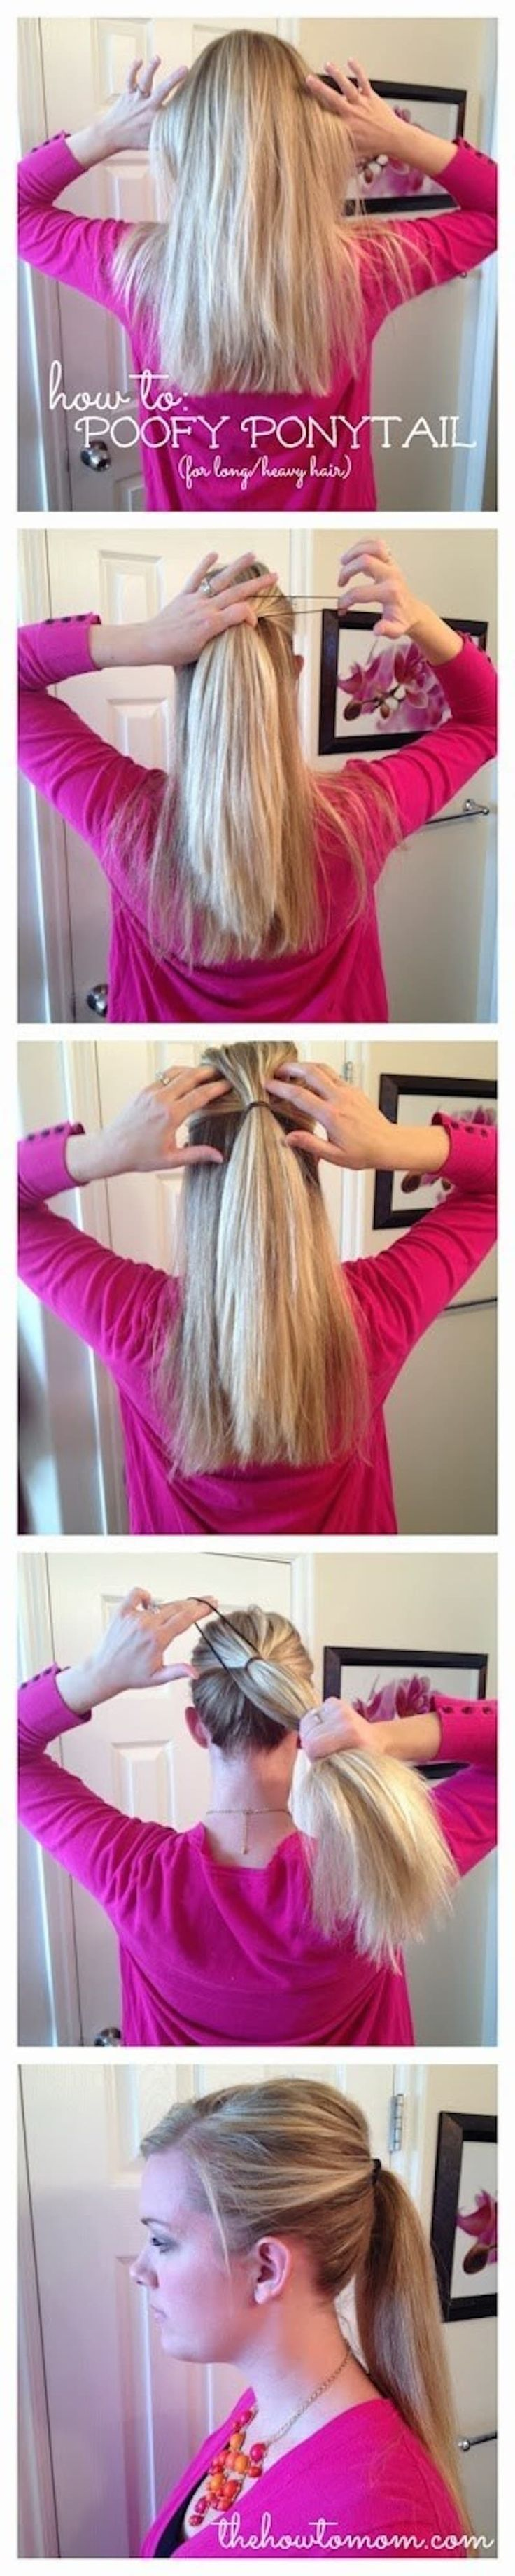 To make it look cohesive, use a thinner band to pull your hair into half-up/half-down. Then use a regular elastic to tie the second ponytail over it. Full how-to here.